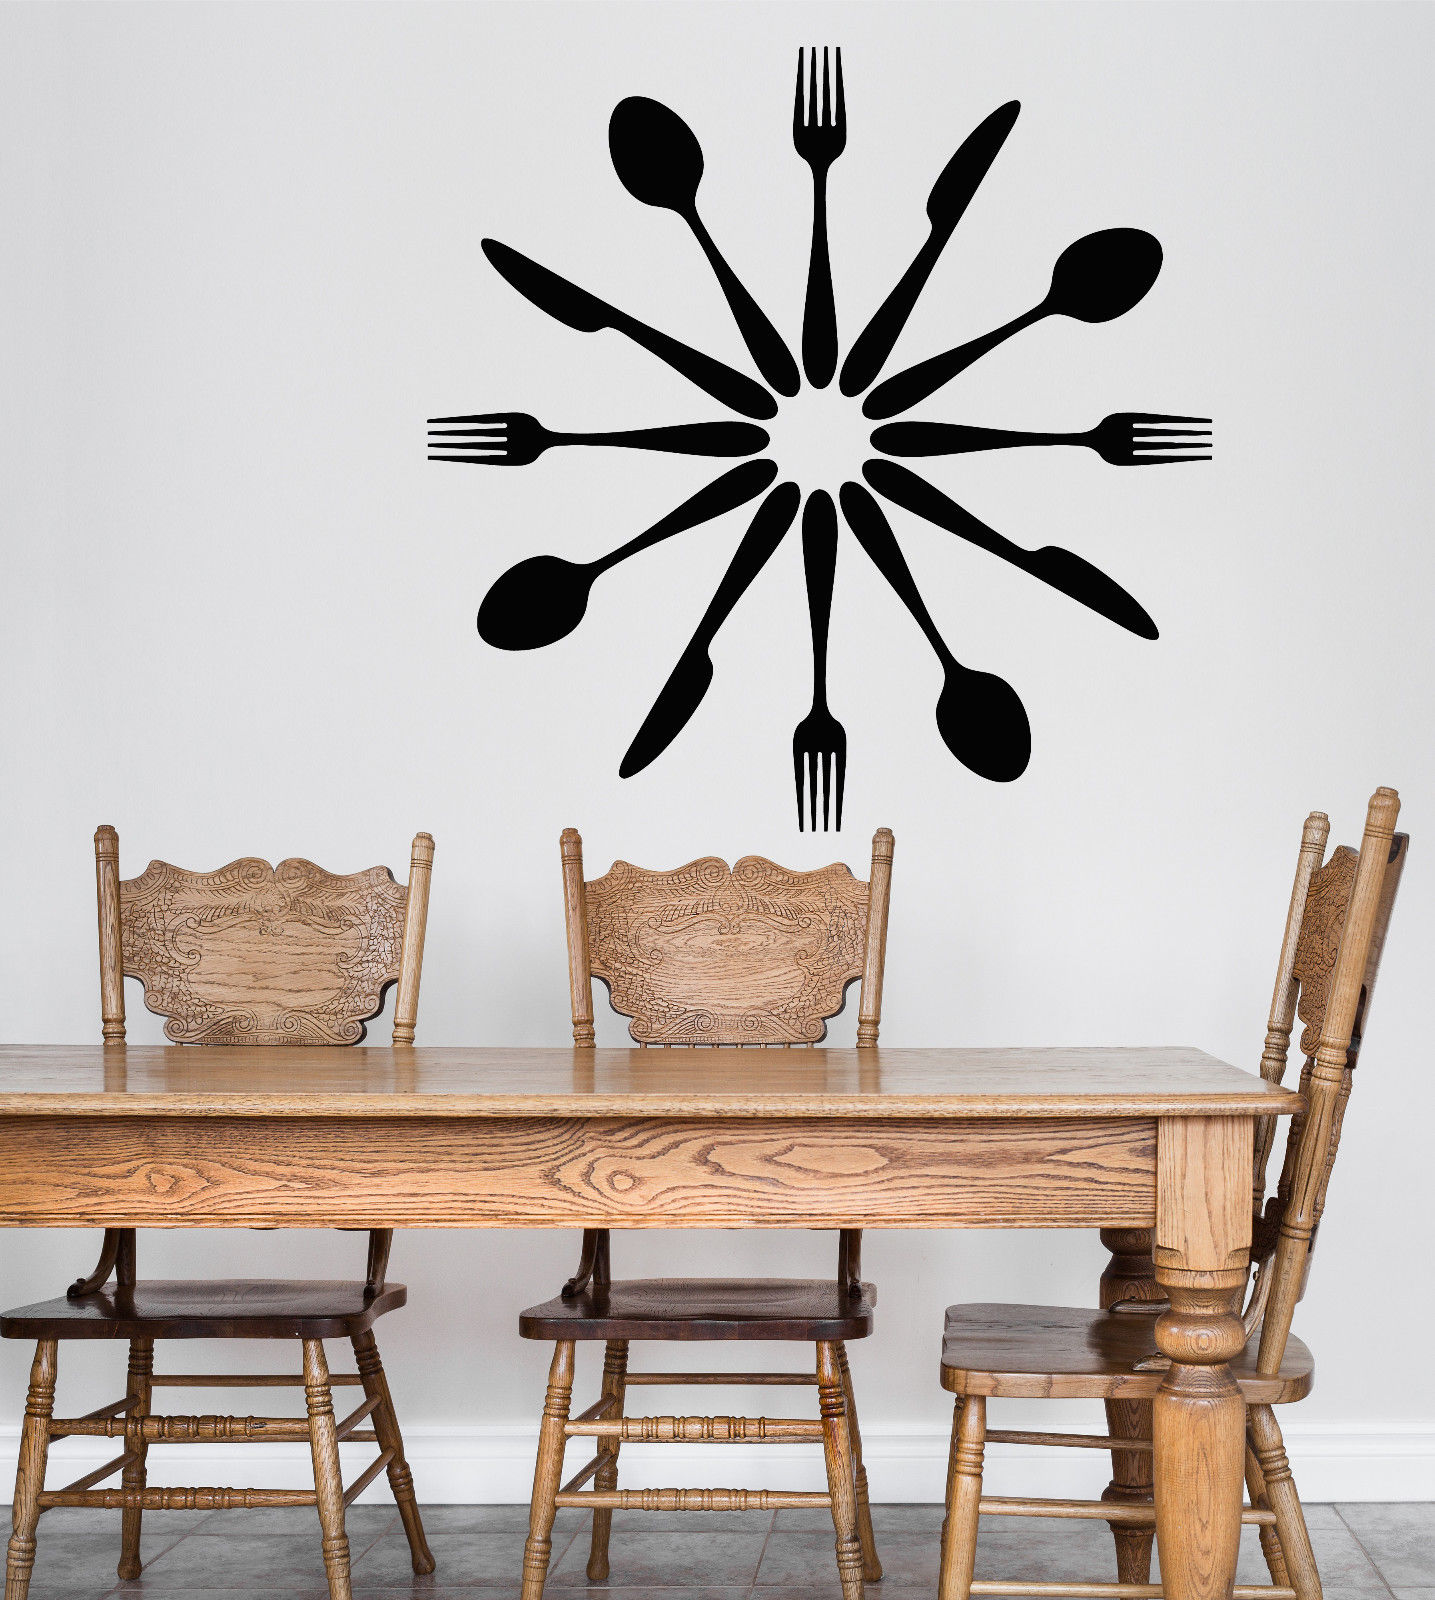 Vinyl Wall Decal Cutlery Spoons Forks Kitchen Decor Dining Room Stickers Wall Art Tattoos